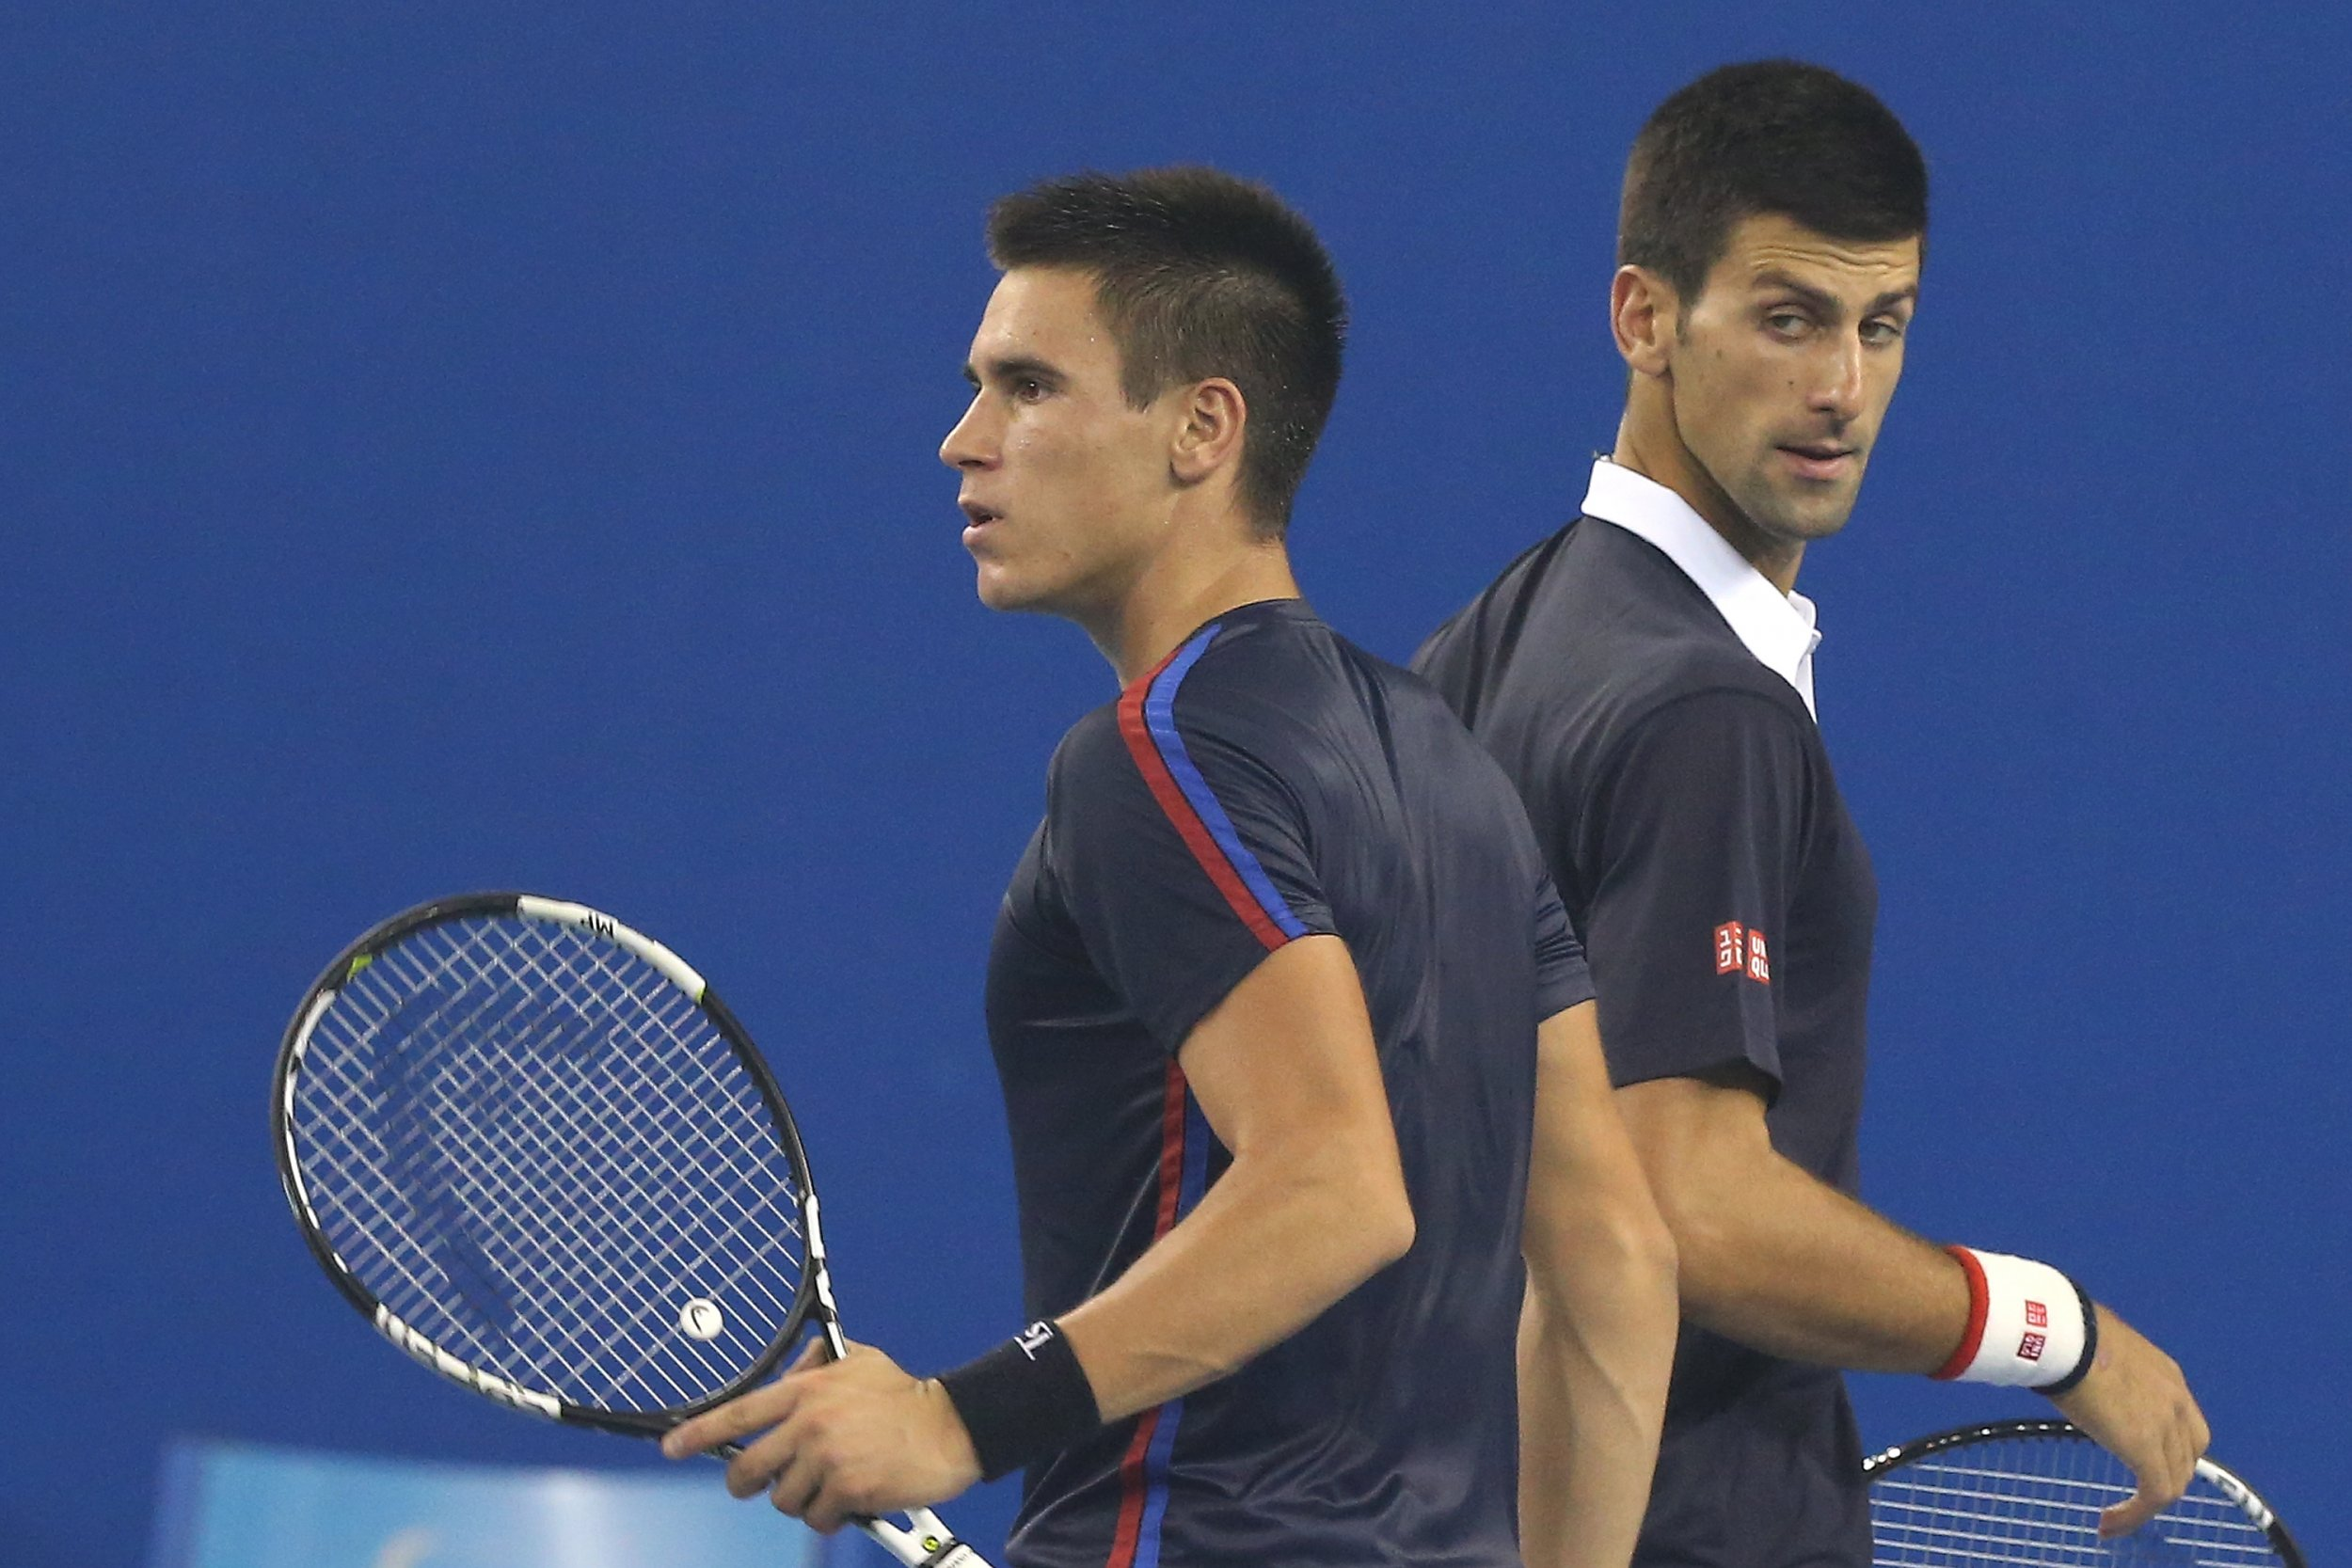 Brussels Attacks Novak Djokovic S Brother Describes His Ordeal On Twitter